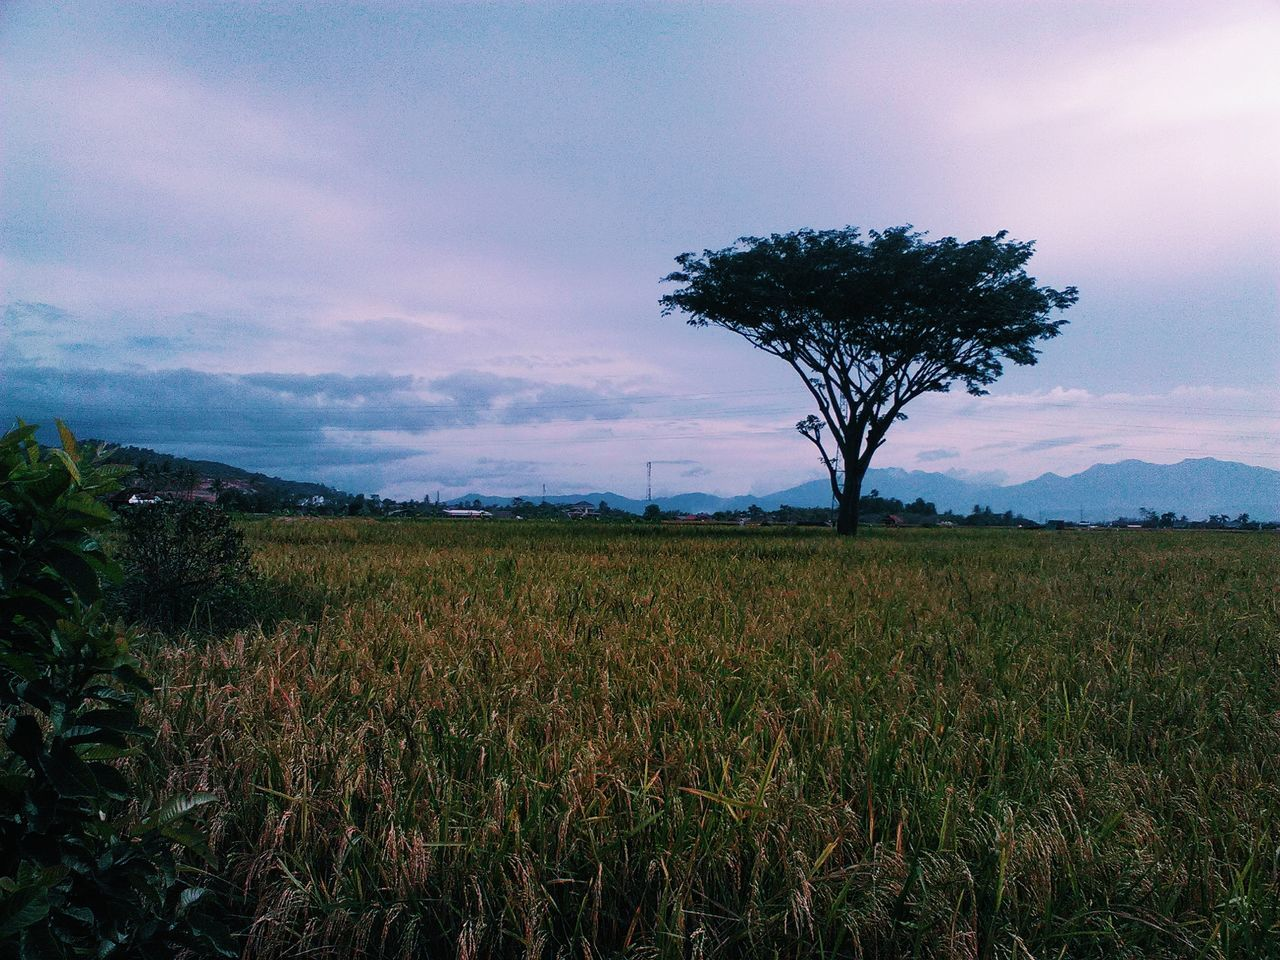 tranquility, tree, tranquil scene, landscape, nature, beauty in nature, scenics, sky, field, solitude, growth, no people, outdoors, grass, lone, day